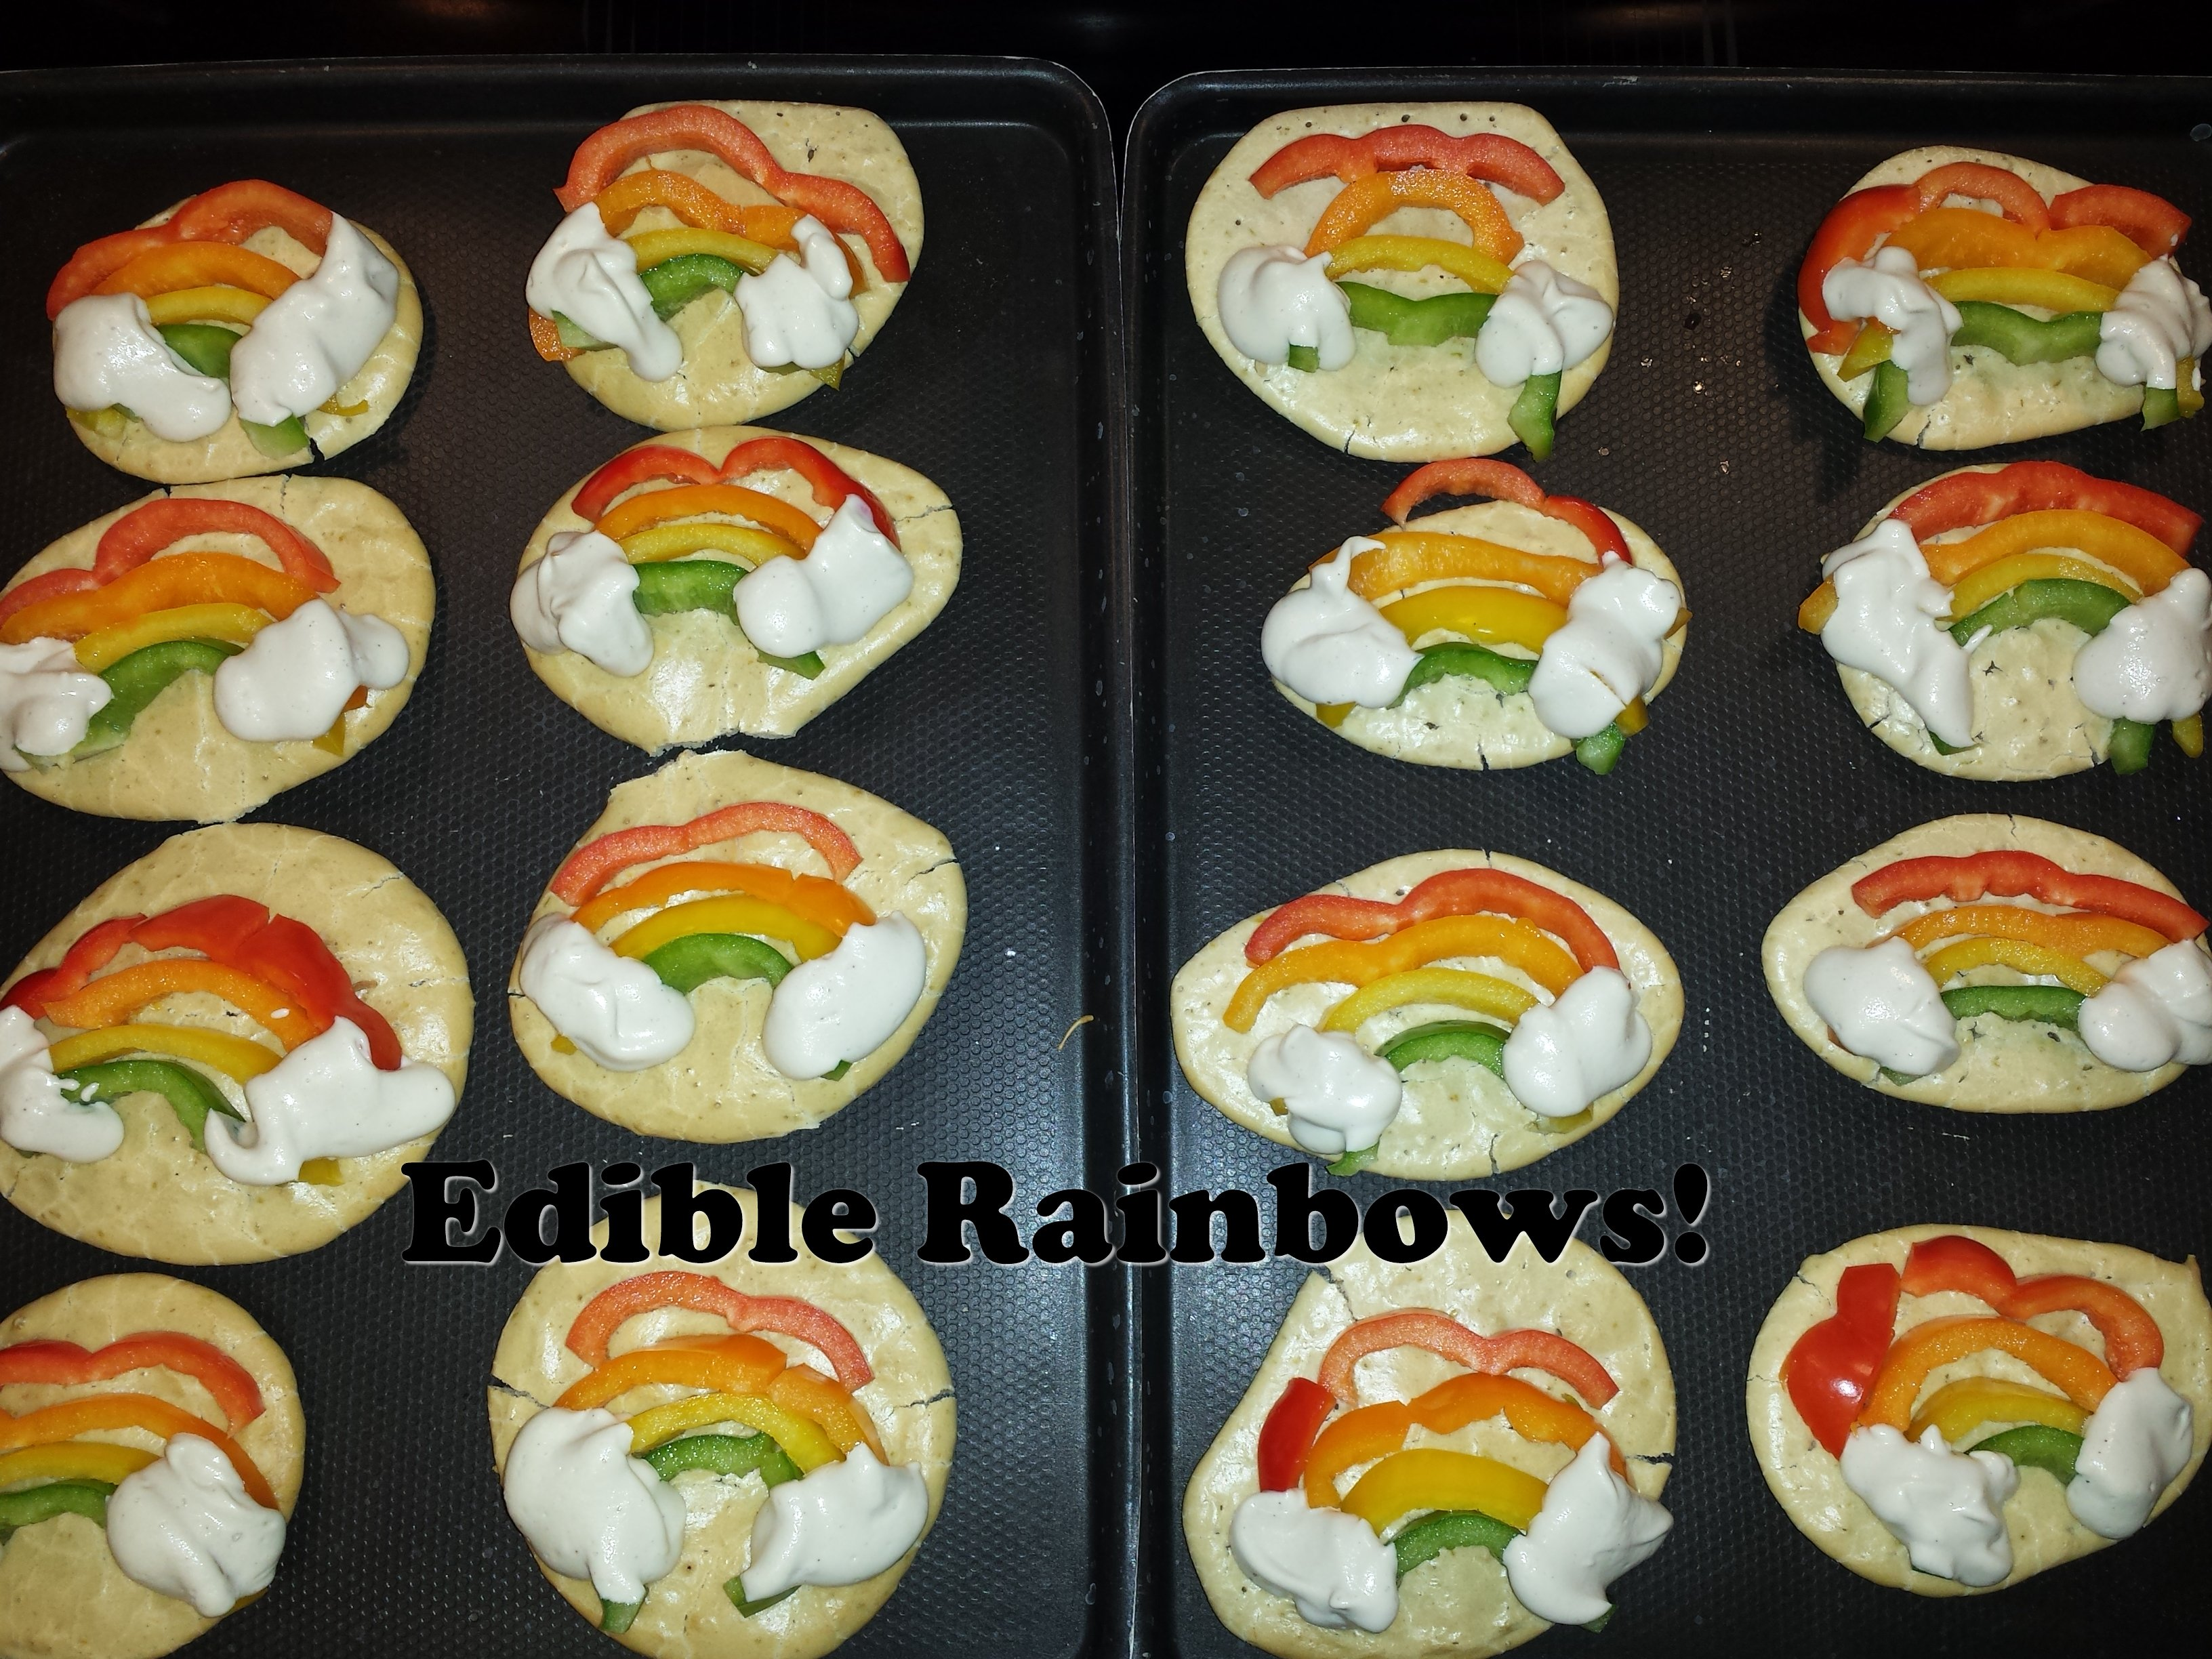 Edible Rainbows!